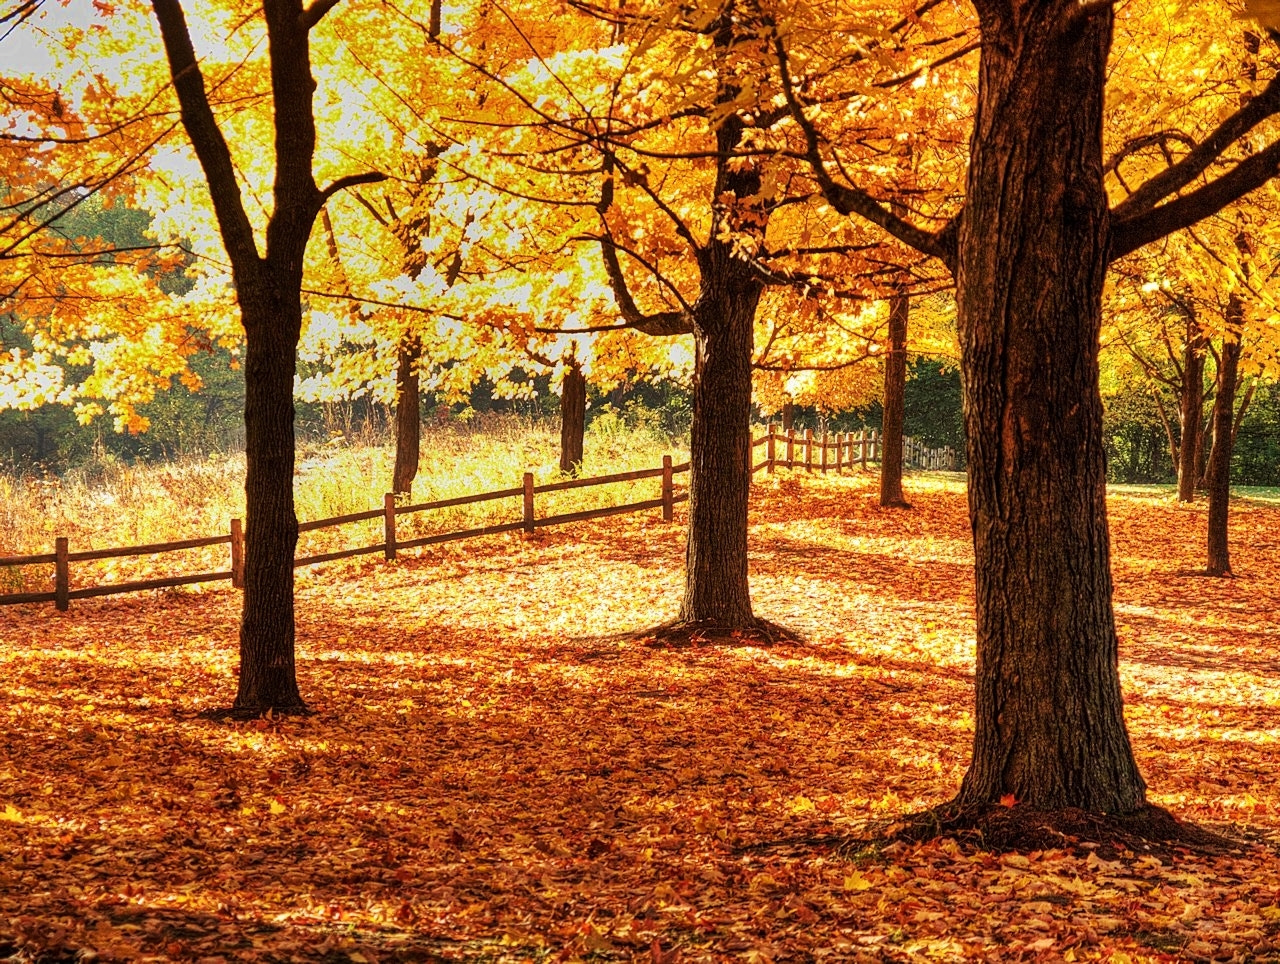 Photograph Autumn Fence by Grant MacDonald on 500px